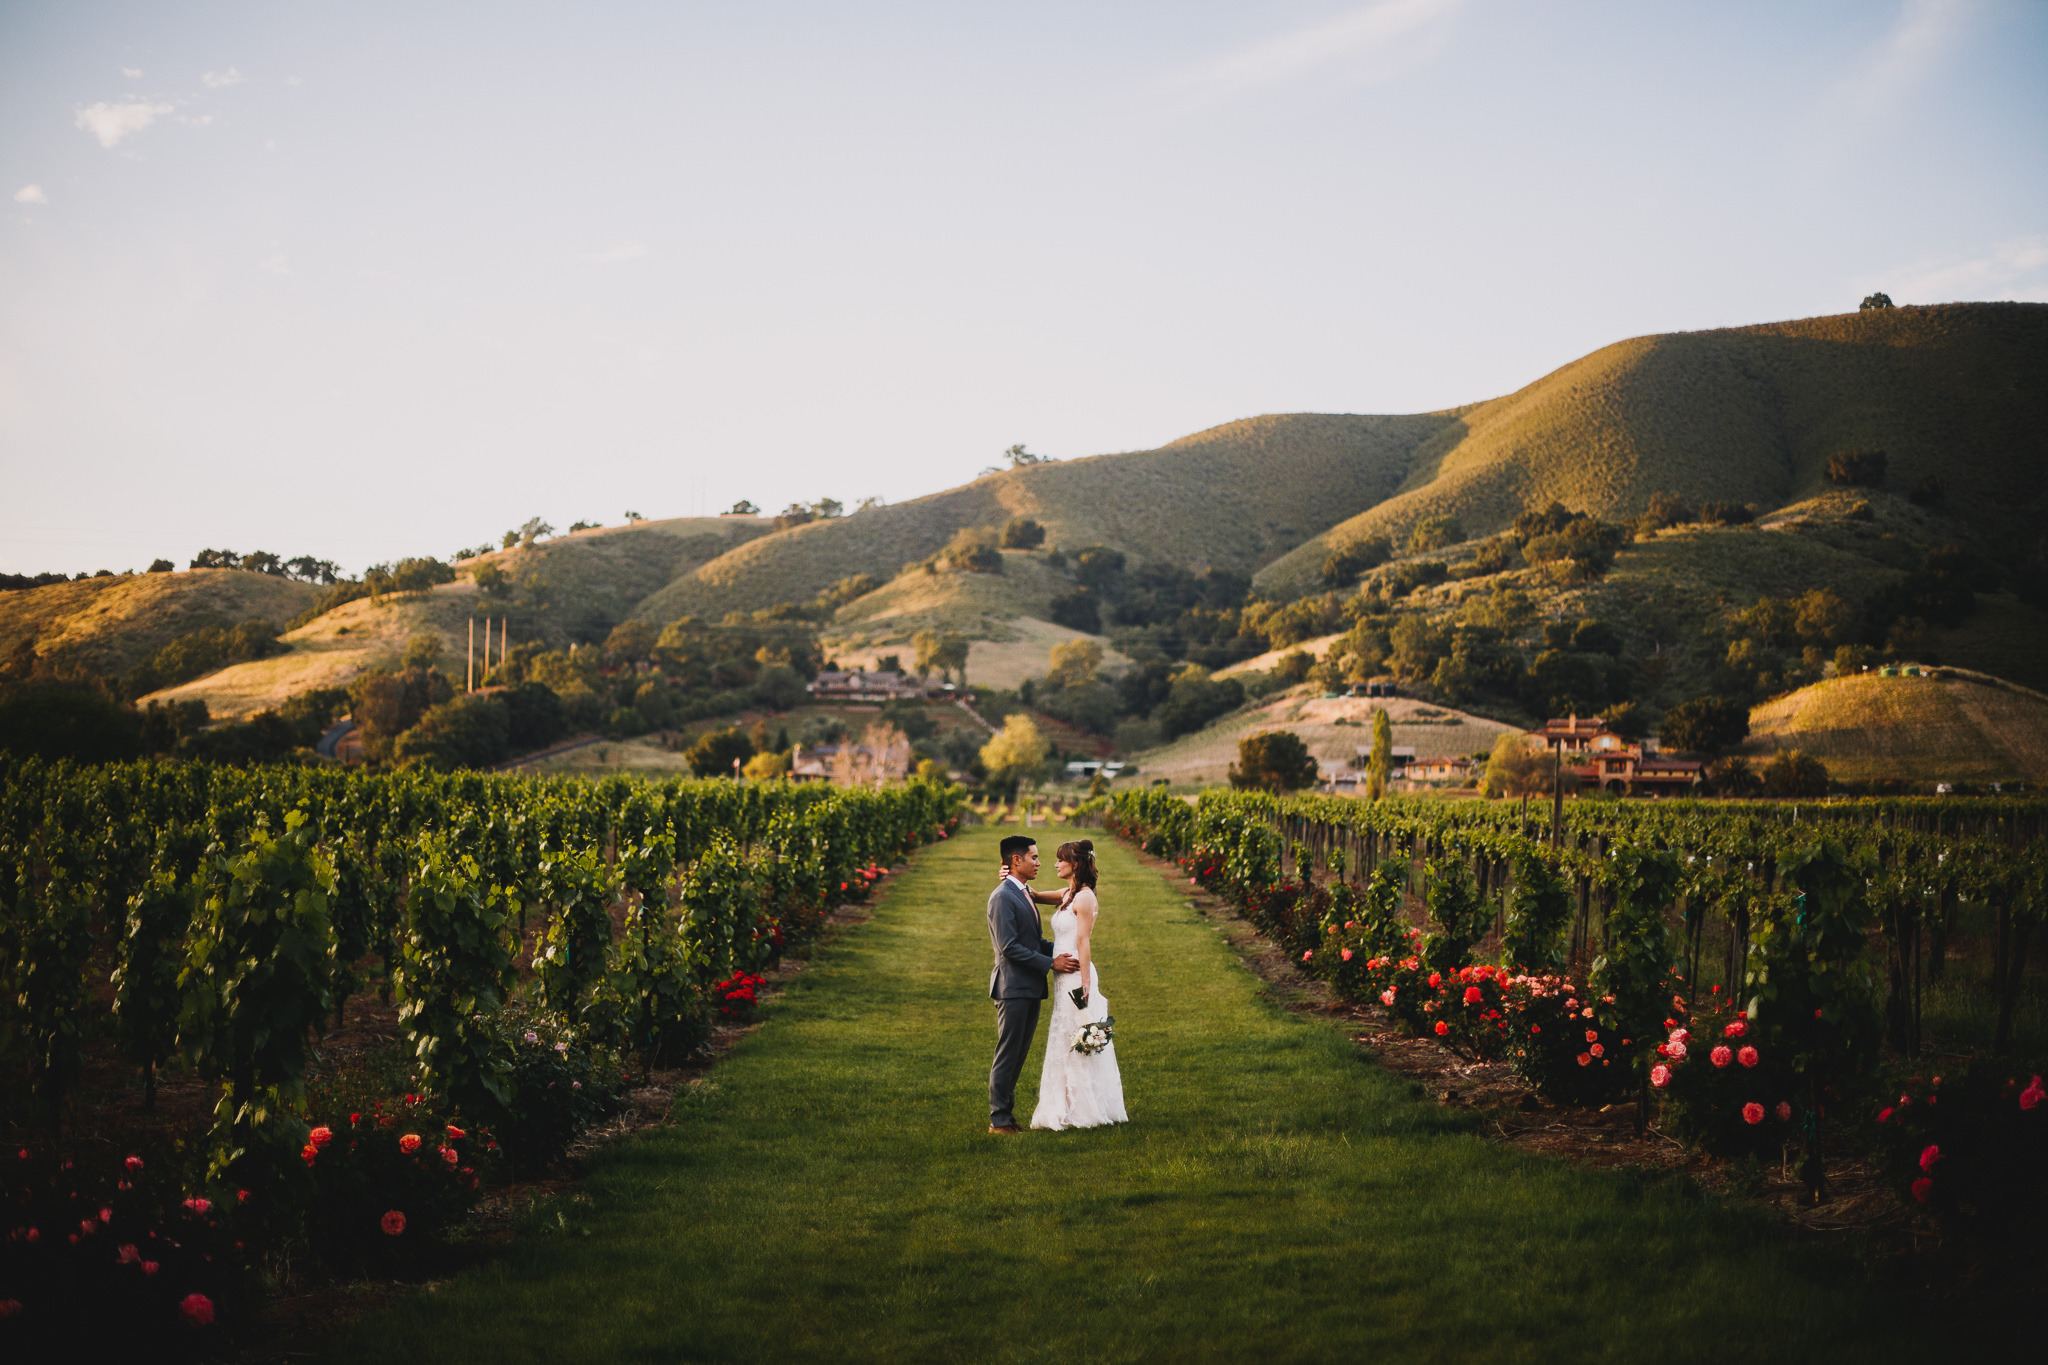 Archer Inspired Photography Kirigin Cellars Gilroy California SoCal Orange County Los Angeles Long Beach Lifestyle Wedding Elopement Engagement Photographer-458.jpg